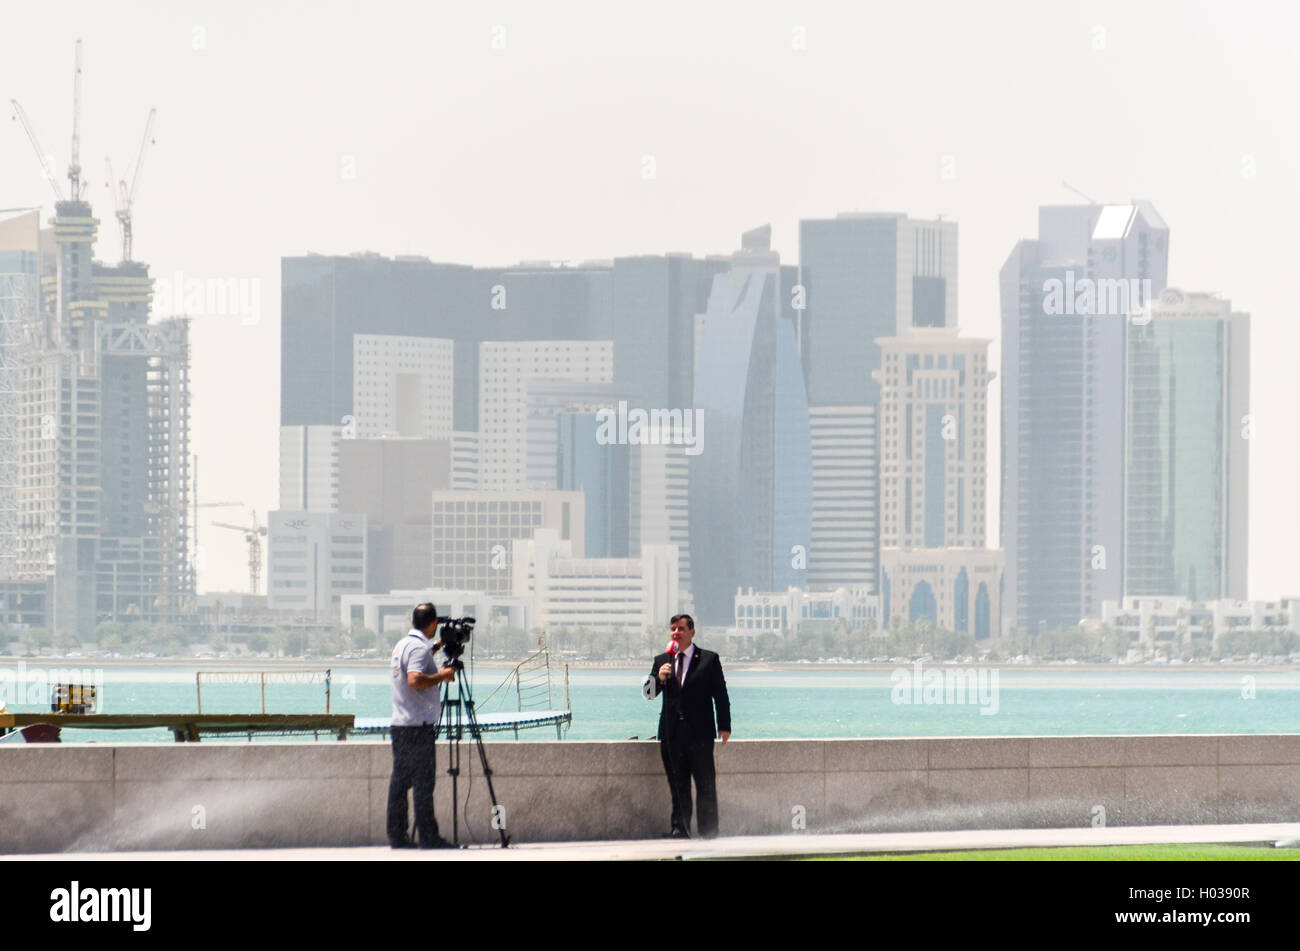 Interview with cameraman and speaker in Doha, with the West Bay financial district in the background - Stock Image